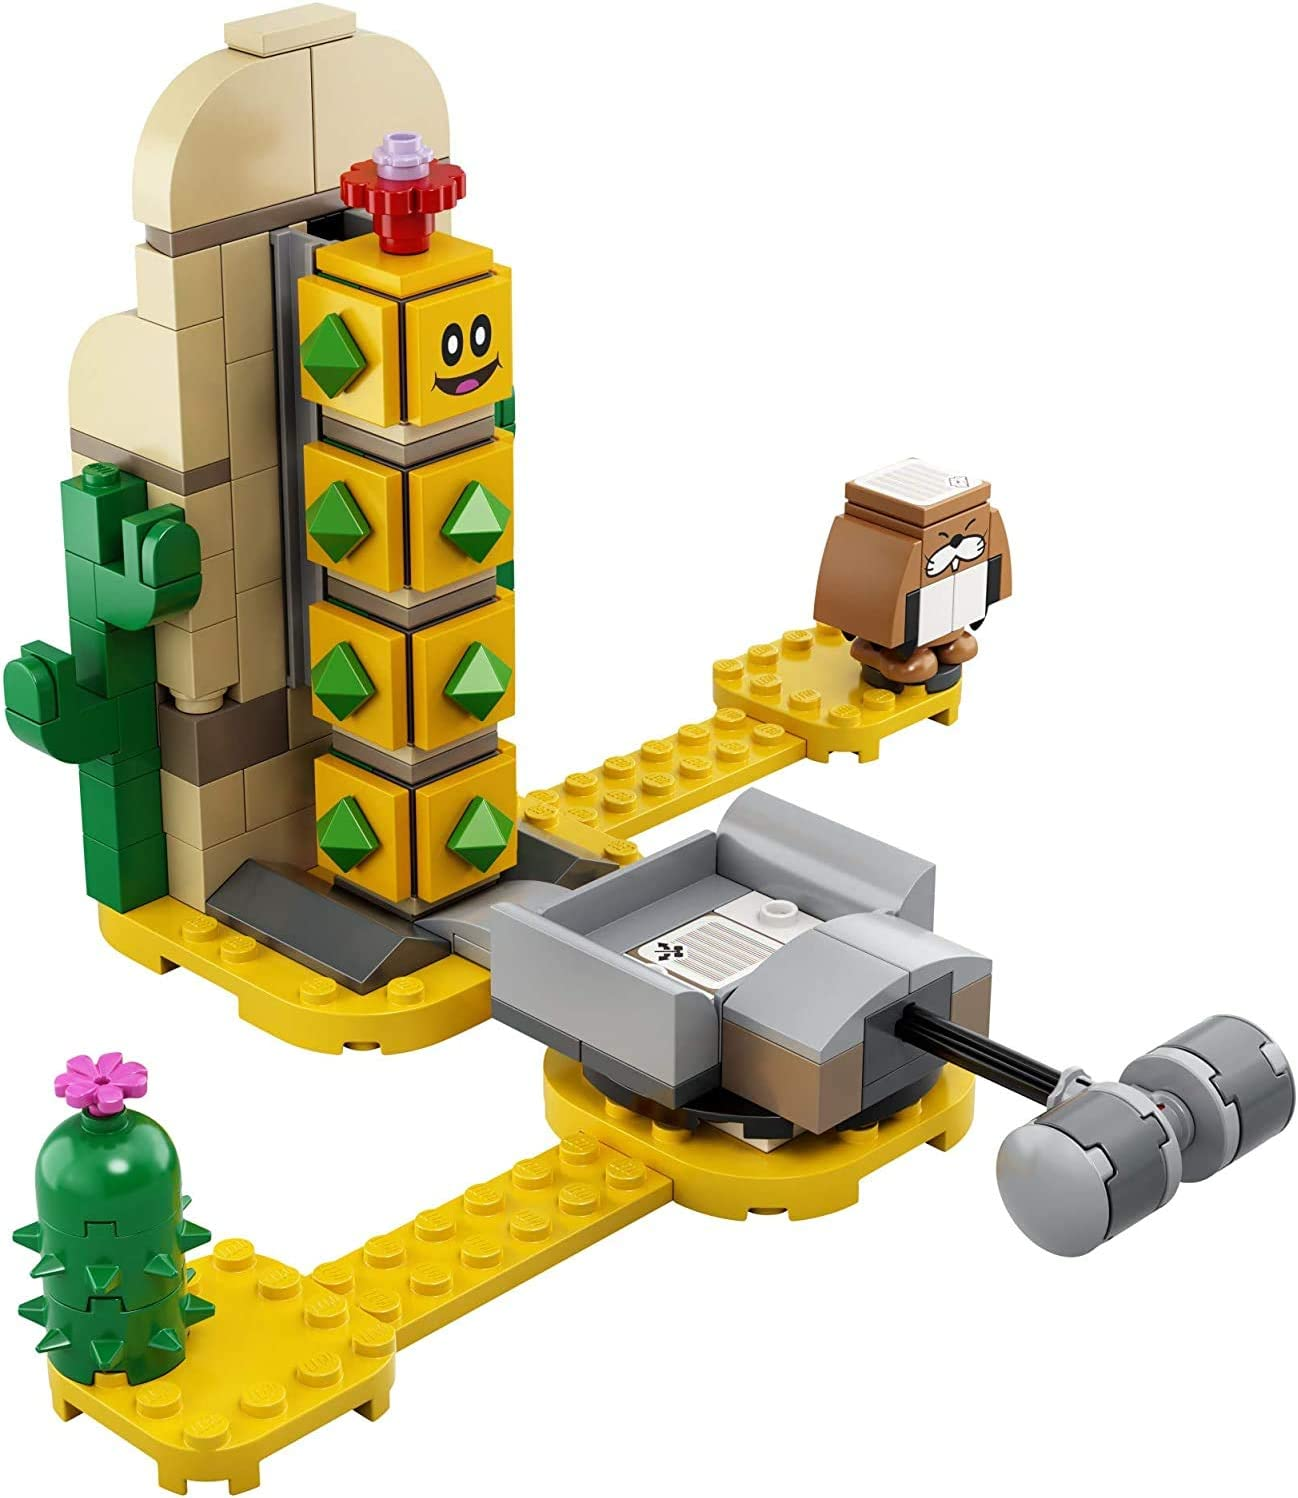 180 Pieces Playset New 2020 71360 LEGO Super Mario Desert Pokey Expansion Set 71363 Building Kit; Toy for Creative Kids to Combine with The Super Mario Adventures with Mario Starter Course